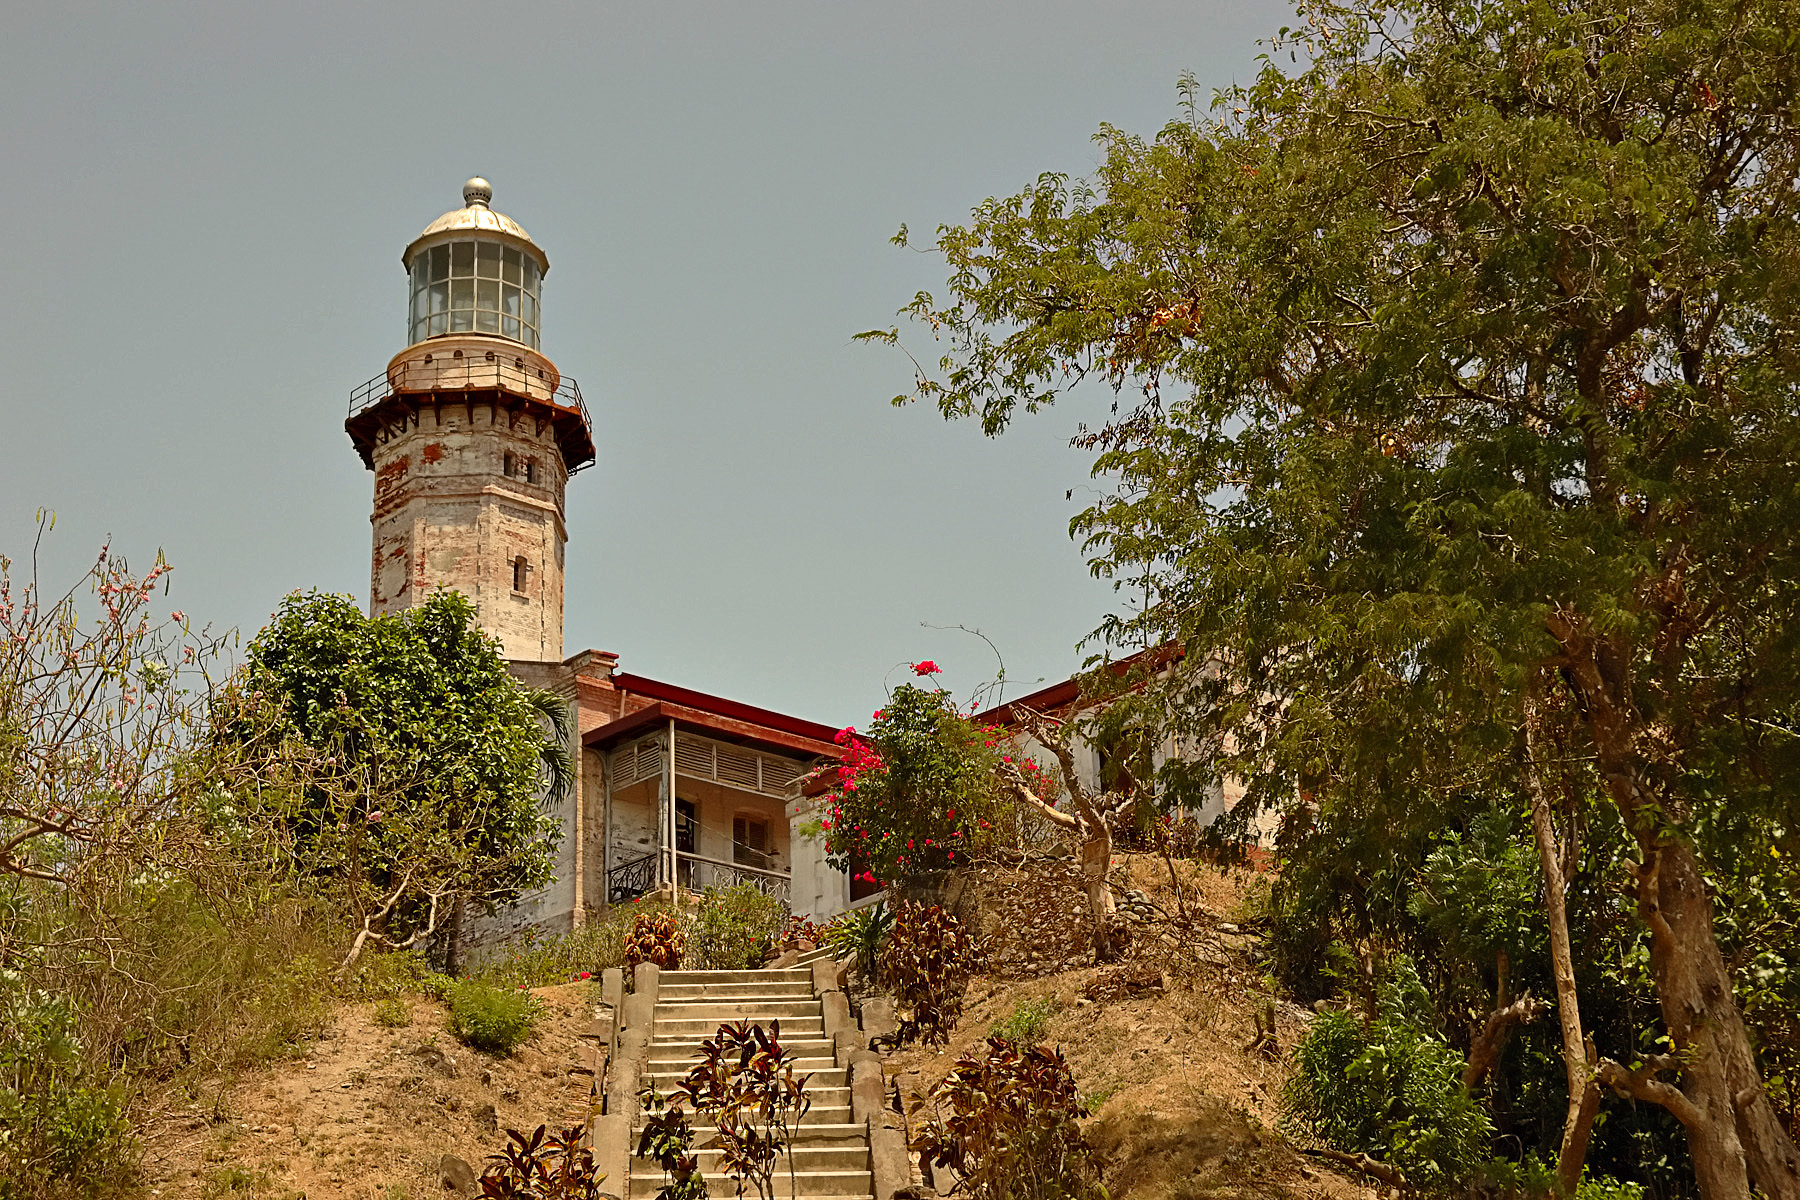 cape bojeador lighthouse principles of tourism Posts about cape bojeador lighthouse written by alroy just so you know, white lies fall under the amoral principles on matters of ethics evil grin.